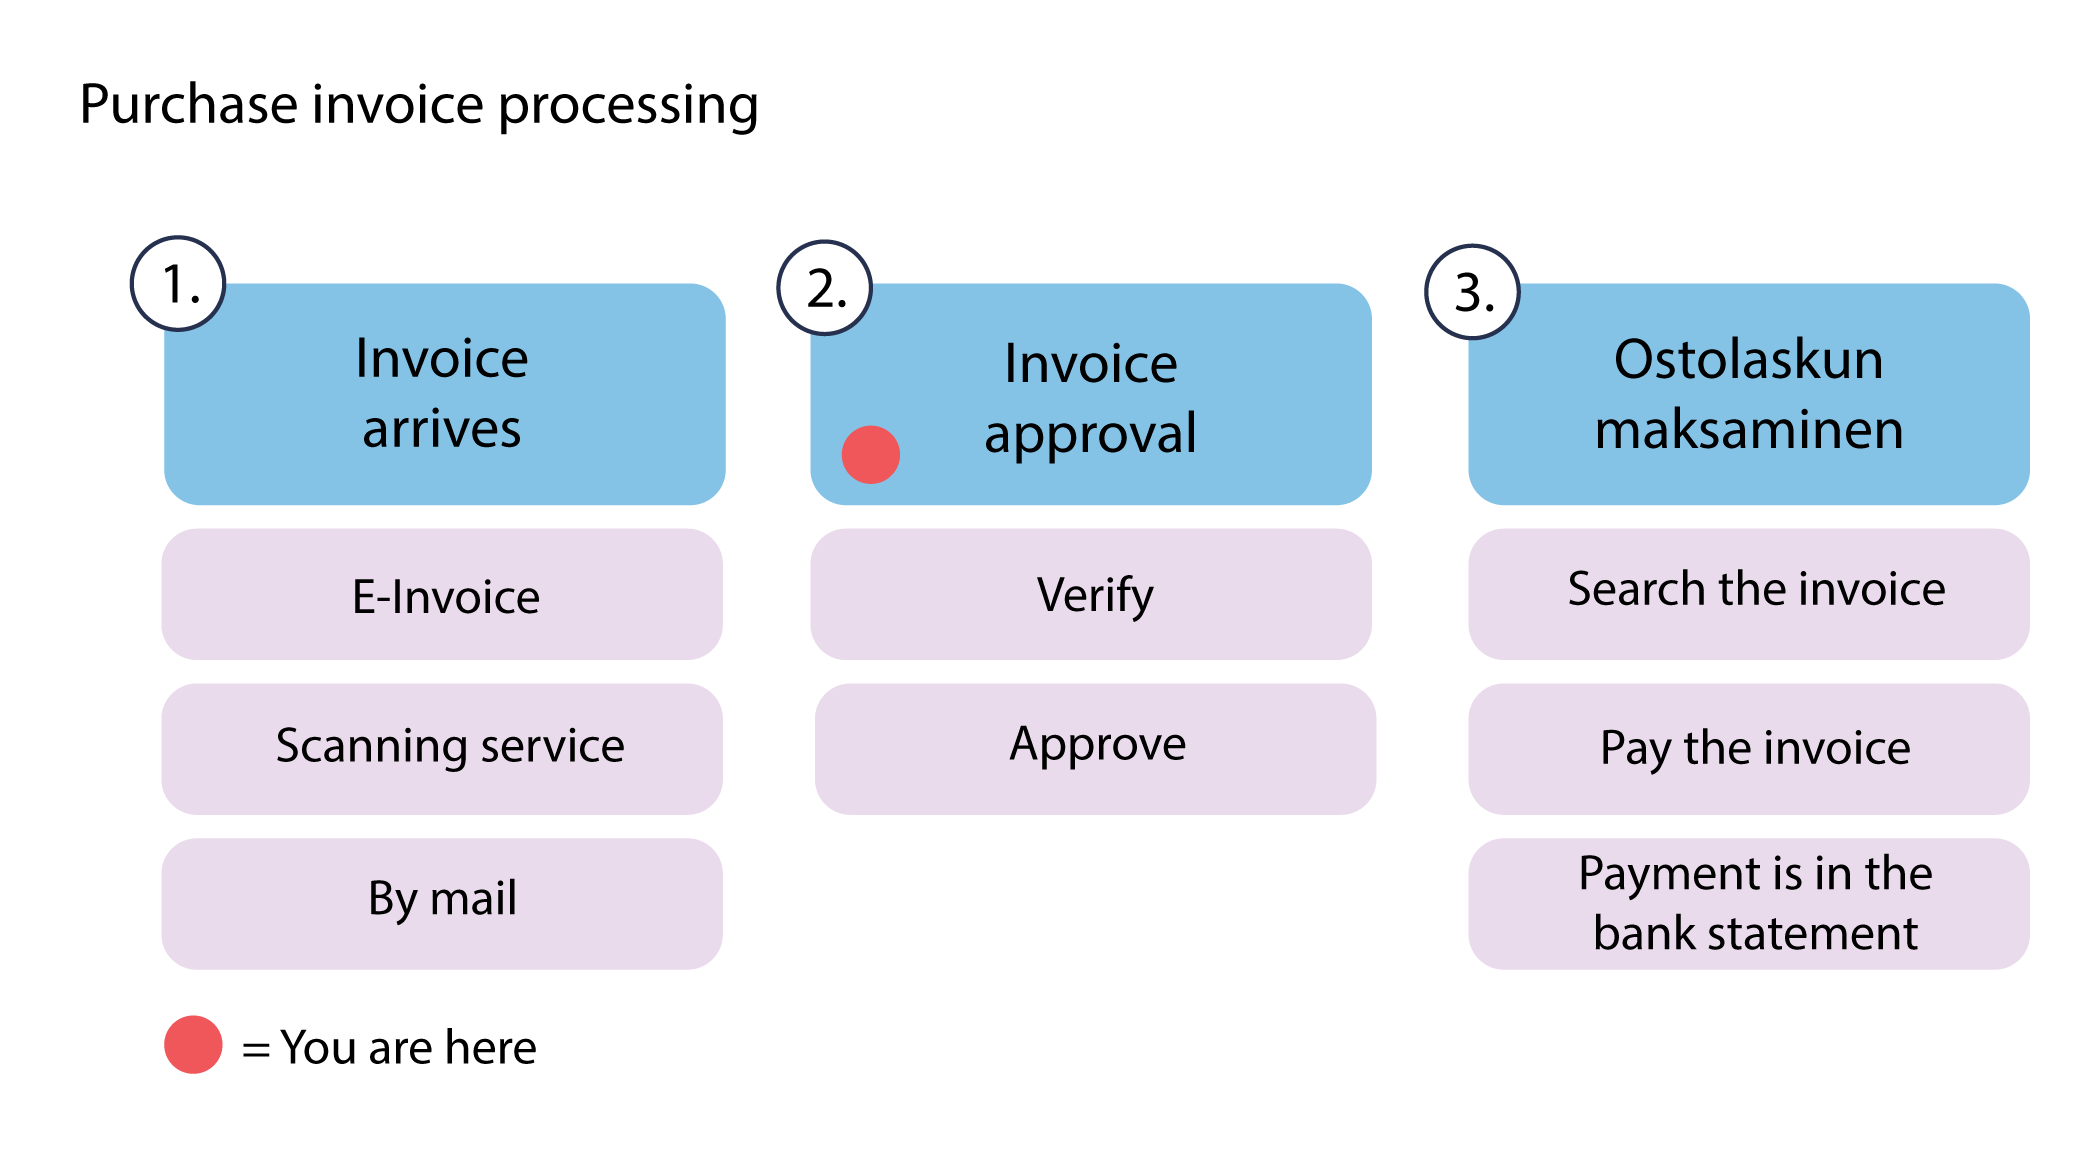 Ostolaskun_prosessi_Purchase_invoice_processing_3.png